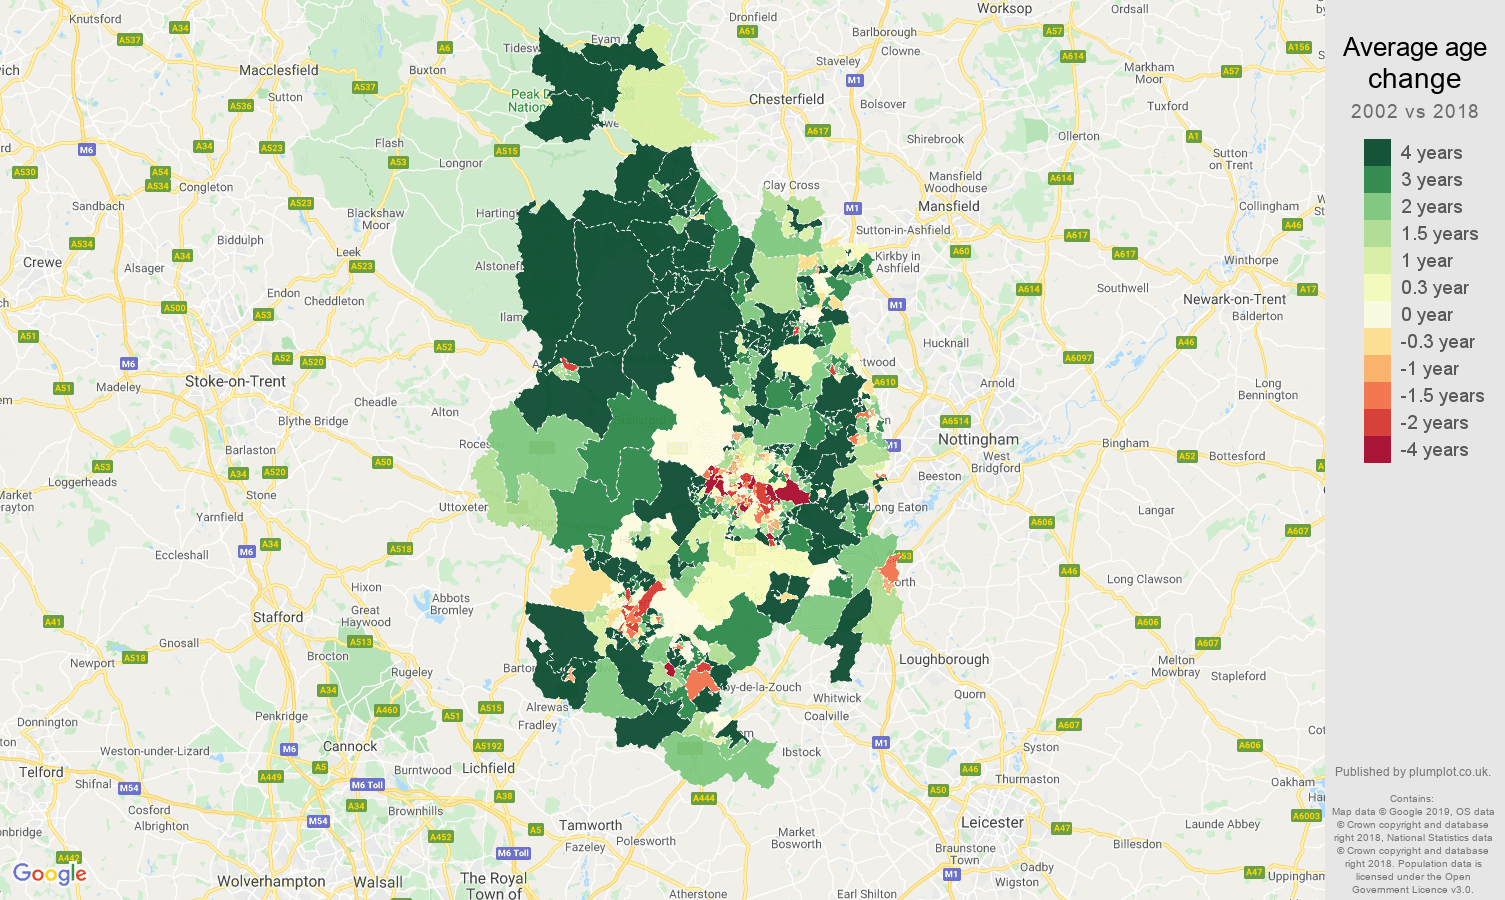 Derby average age change map